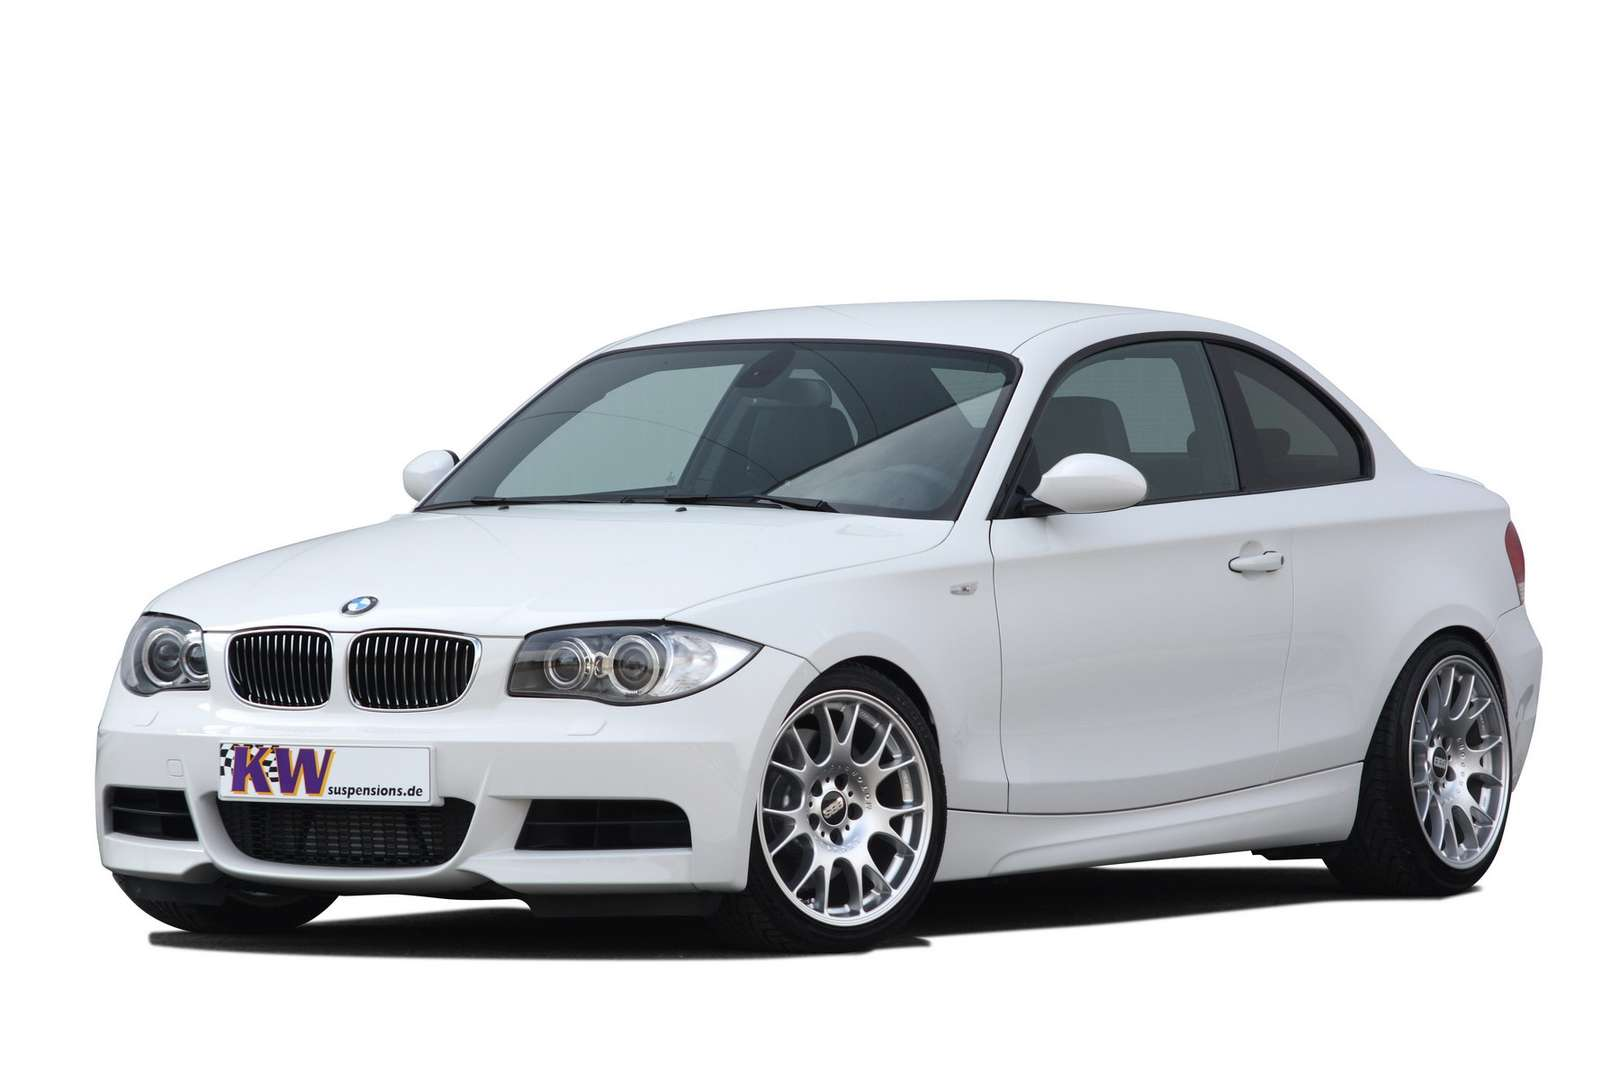 BMW 1 Series Coupe #7930207